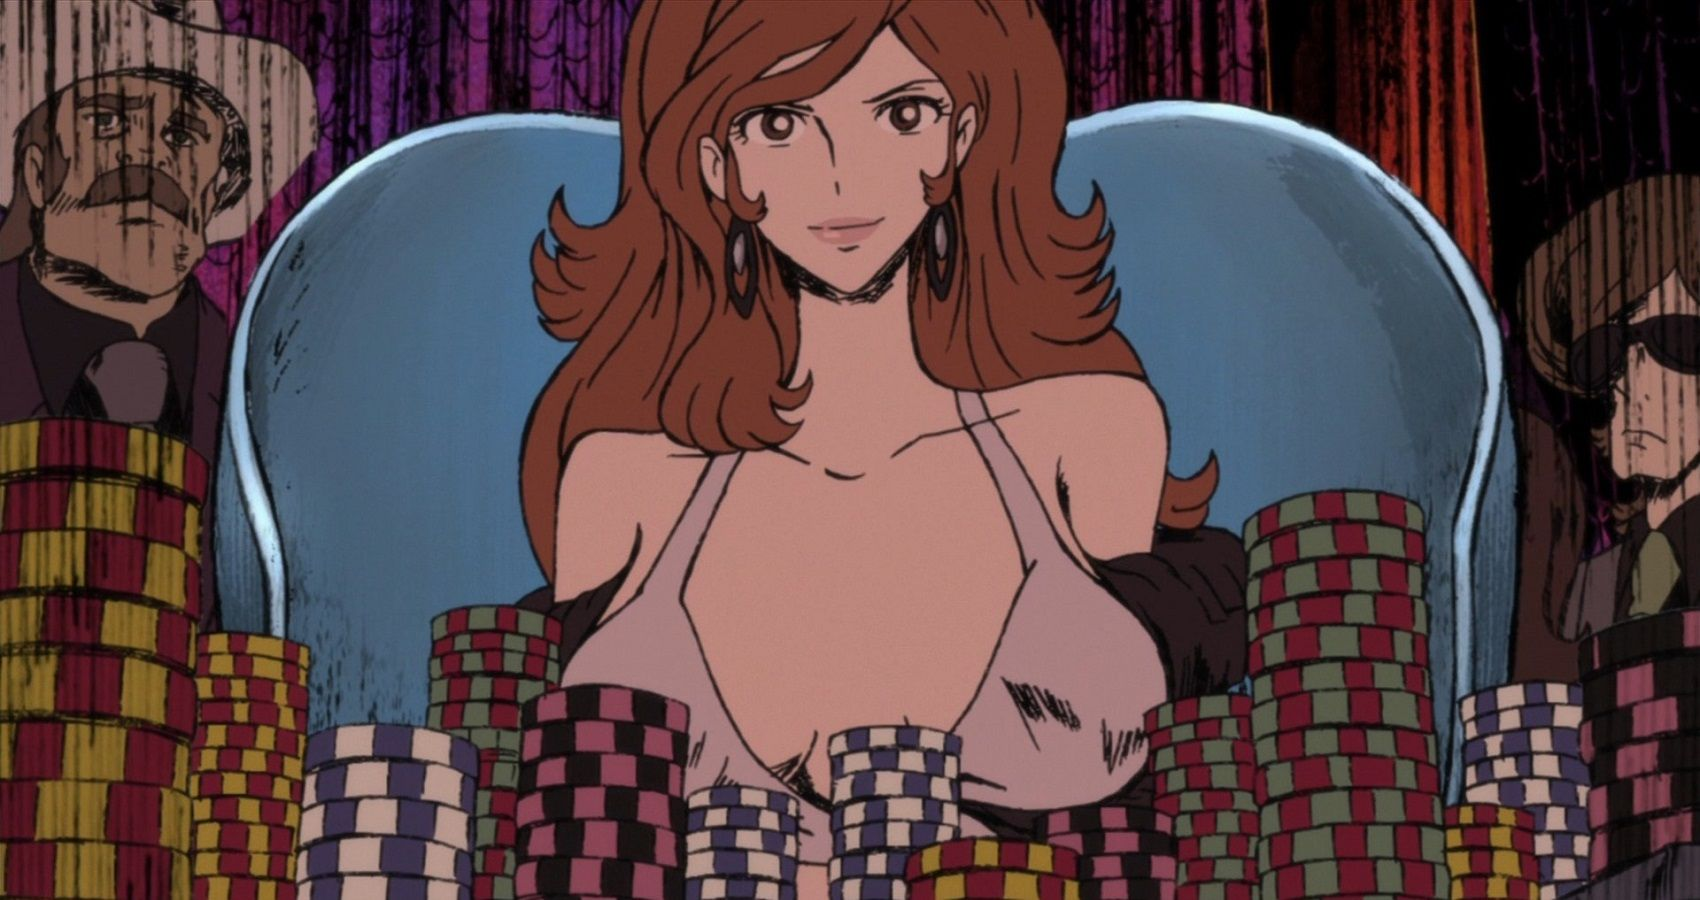 Lupin III: 10 Facts You Never Knew About Fujiko Mine | CBR